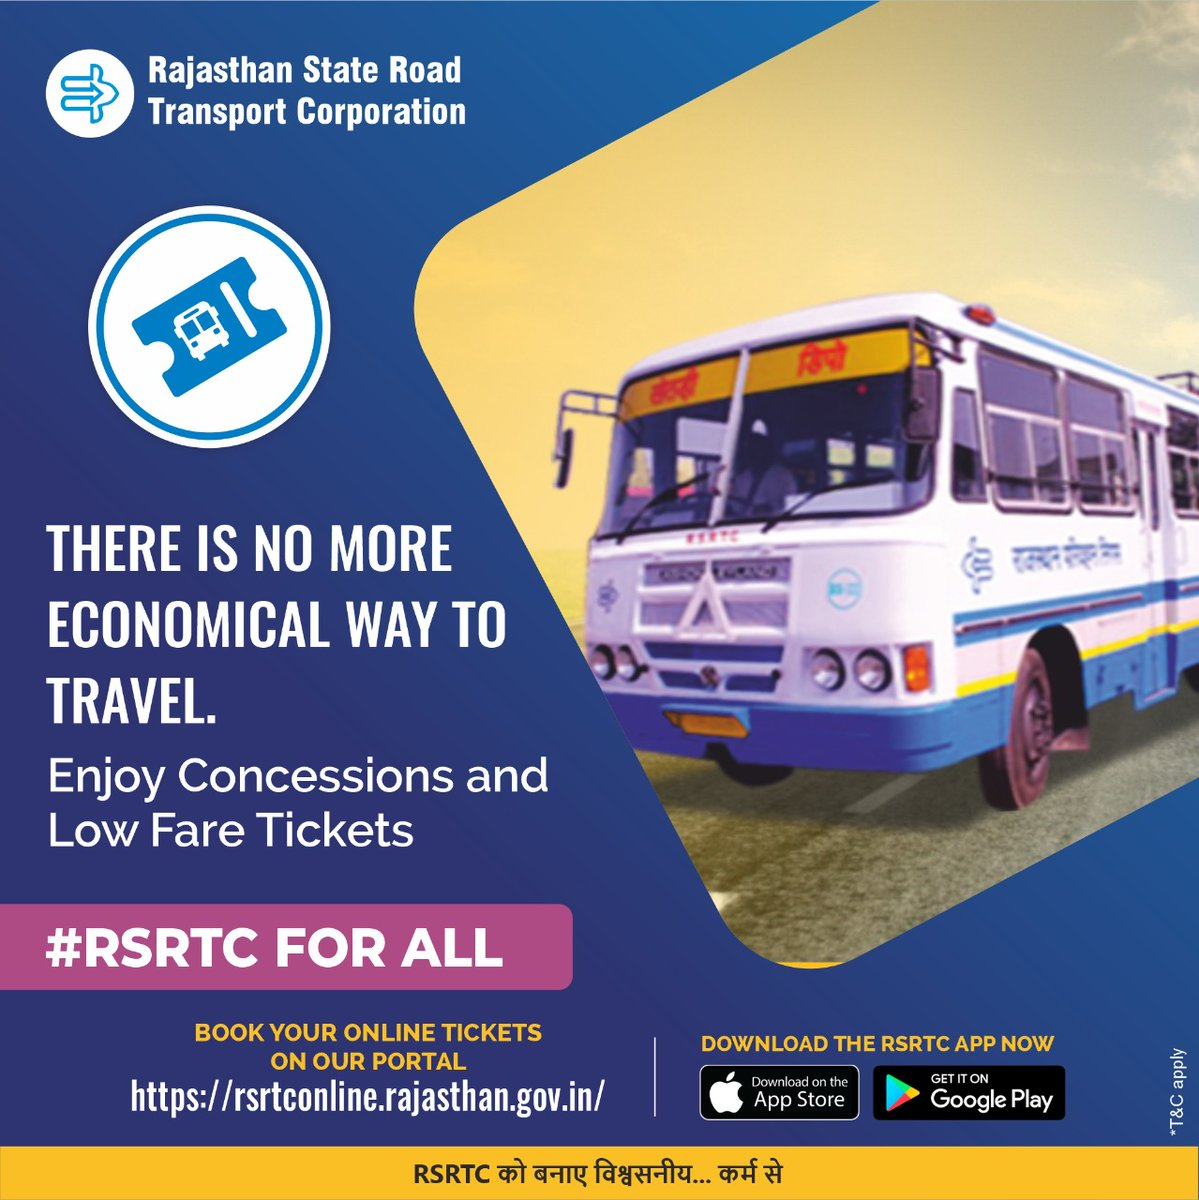 A budget friendly travel is all we need! #RSRTC #ApkaRSRTCApkeSath #RajasthanRoadways #RSRTCBuses #IndianBuses #Rajasthan #rajasthan_state_road_transport_corporation #rajasthanbus #RajasthanTourism #RajasthanGovernment #Travel #RajasthanTour #Buses #safejourney #wednesdaythought